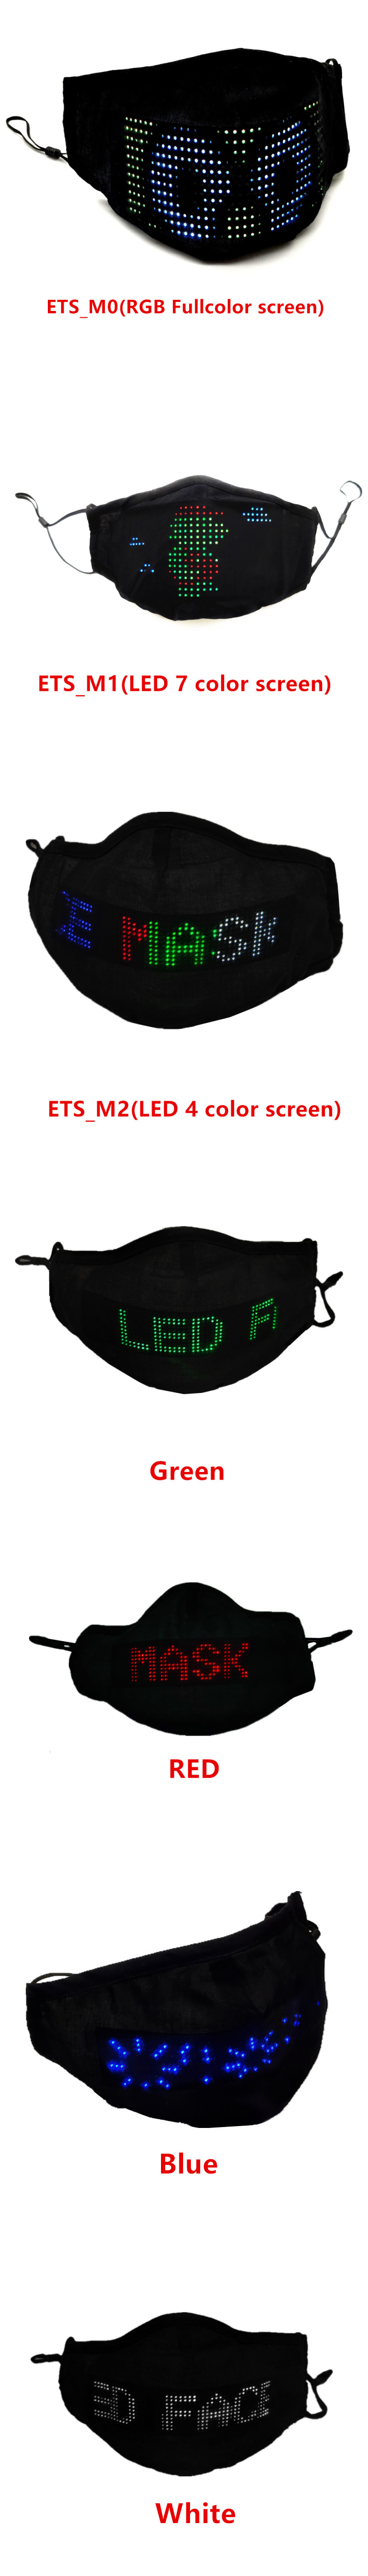 LED Full color Mask Fashion Smartphone Control Text Scrolling LED Mask, Editable Pattern Display, Music Equalizer